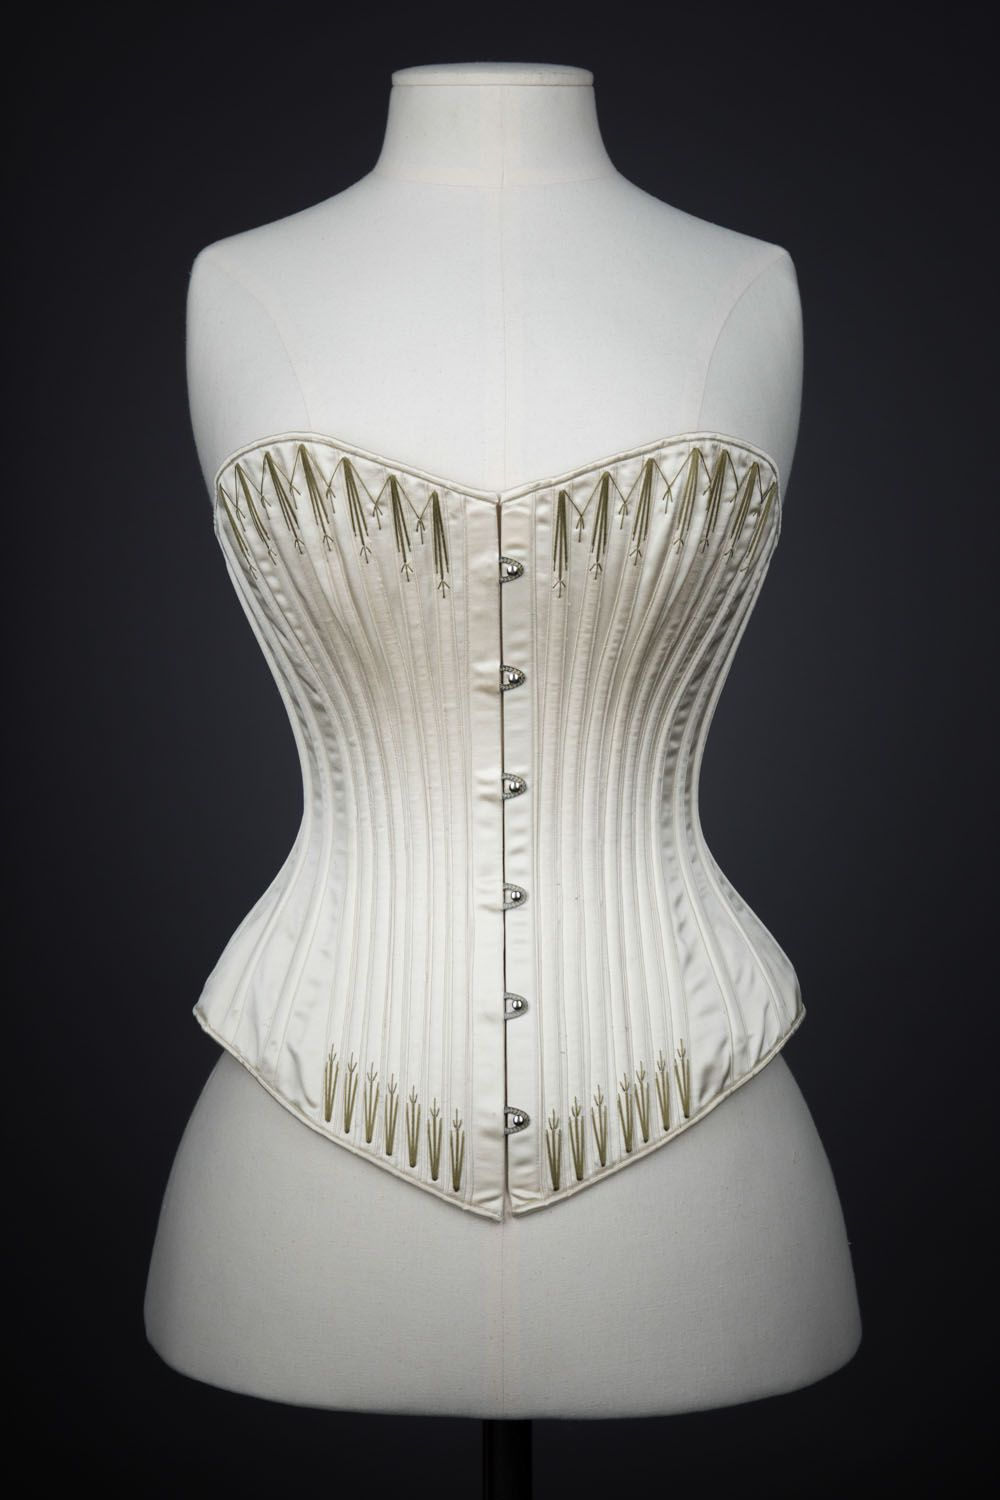 a948ae2fdda 1890s Symington Reproduction Silk Corset By Cathy Hay. The Underpinnings  Museum. Photography Tigz Rice